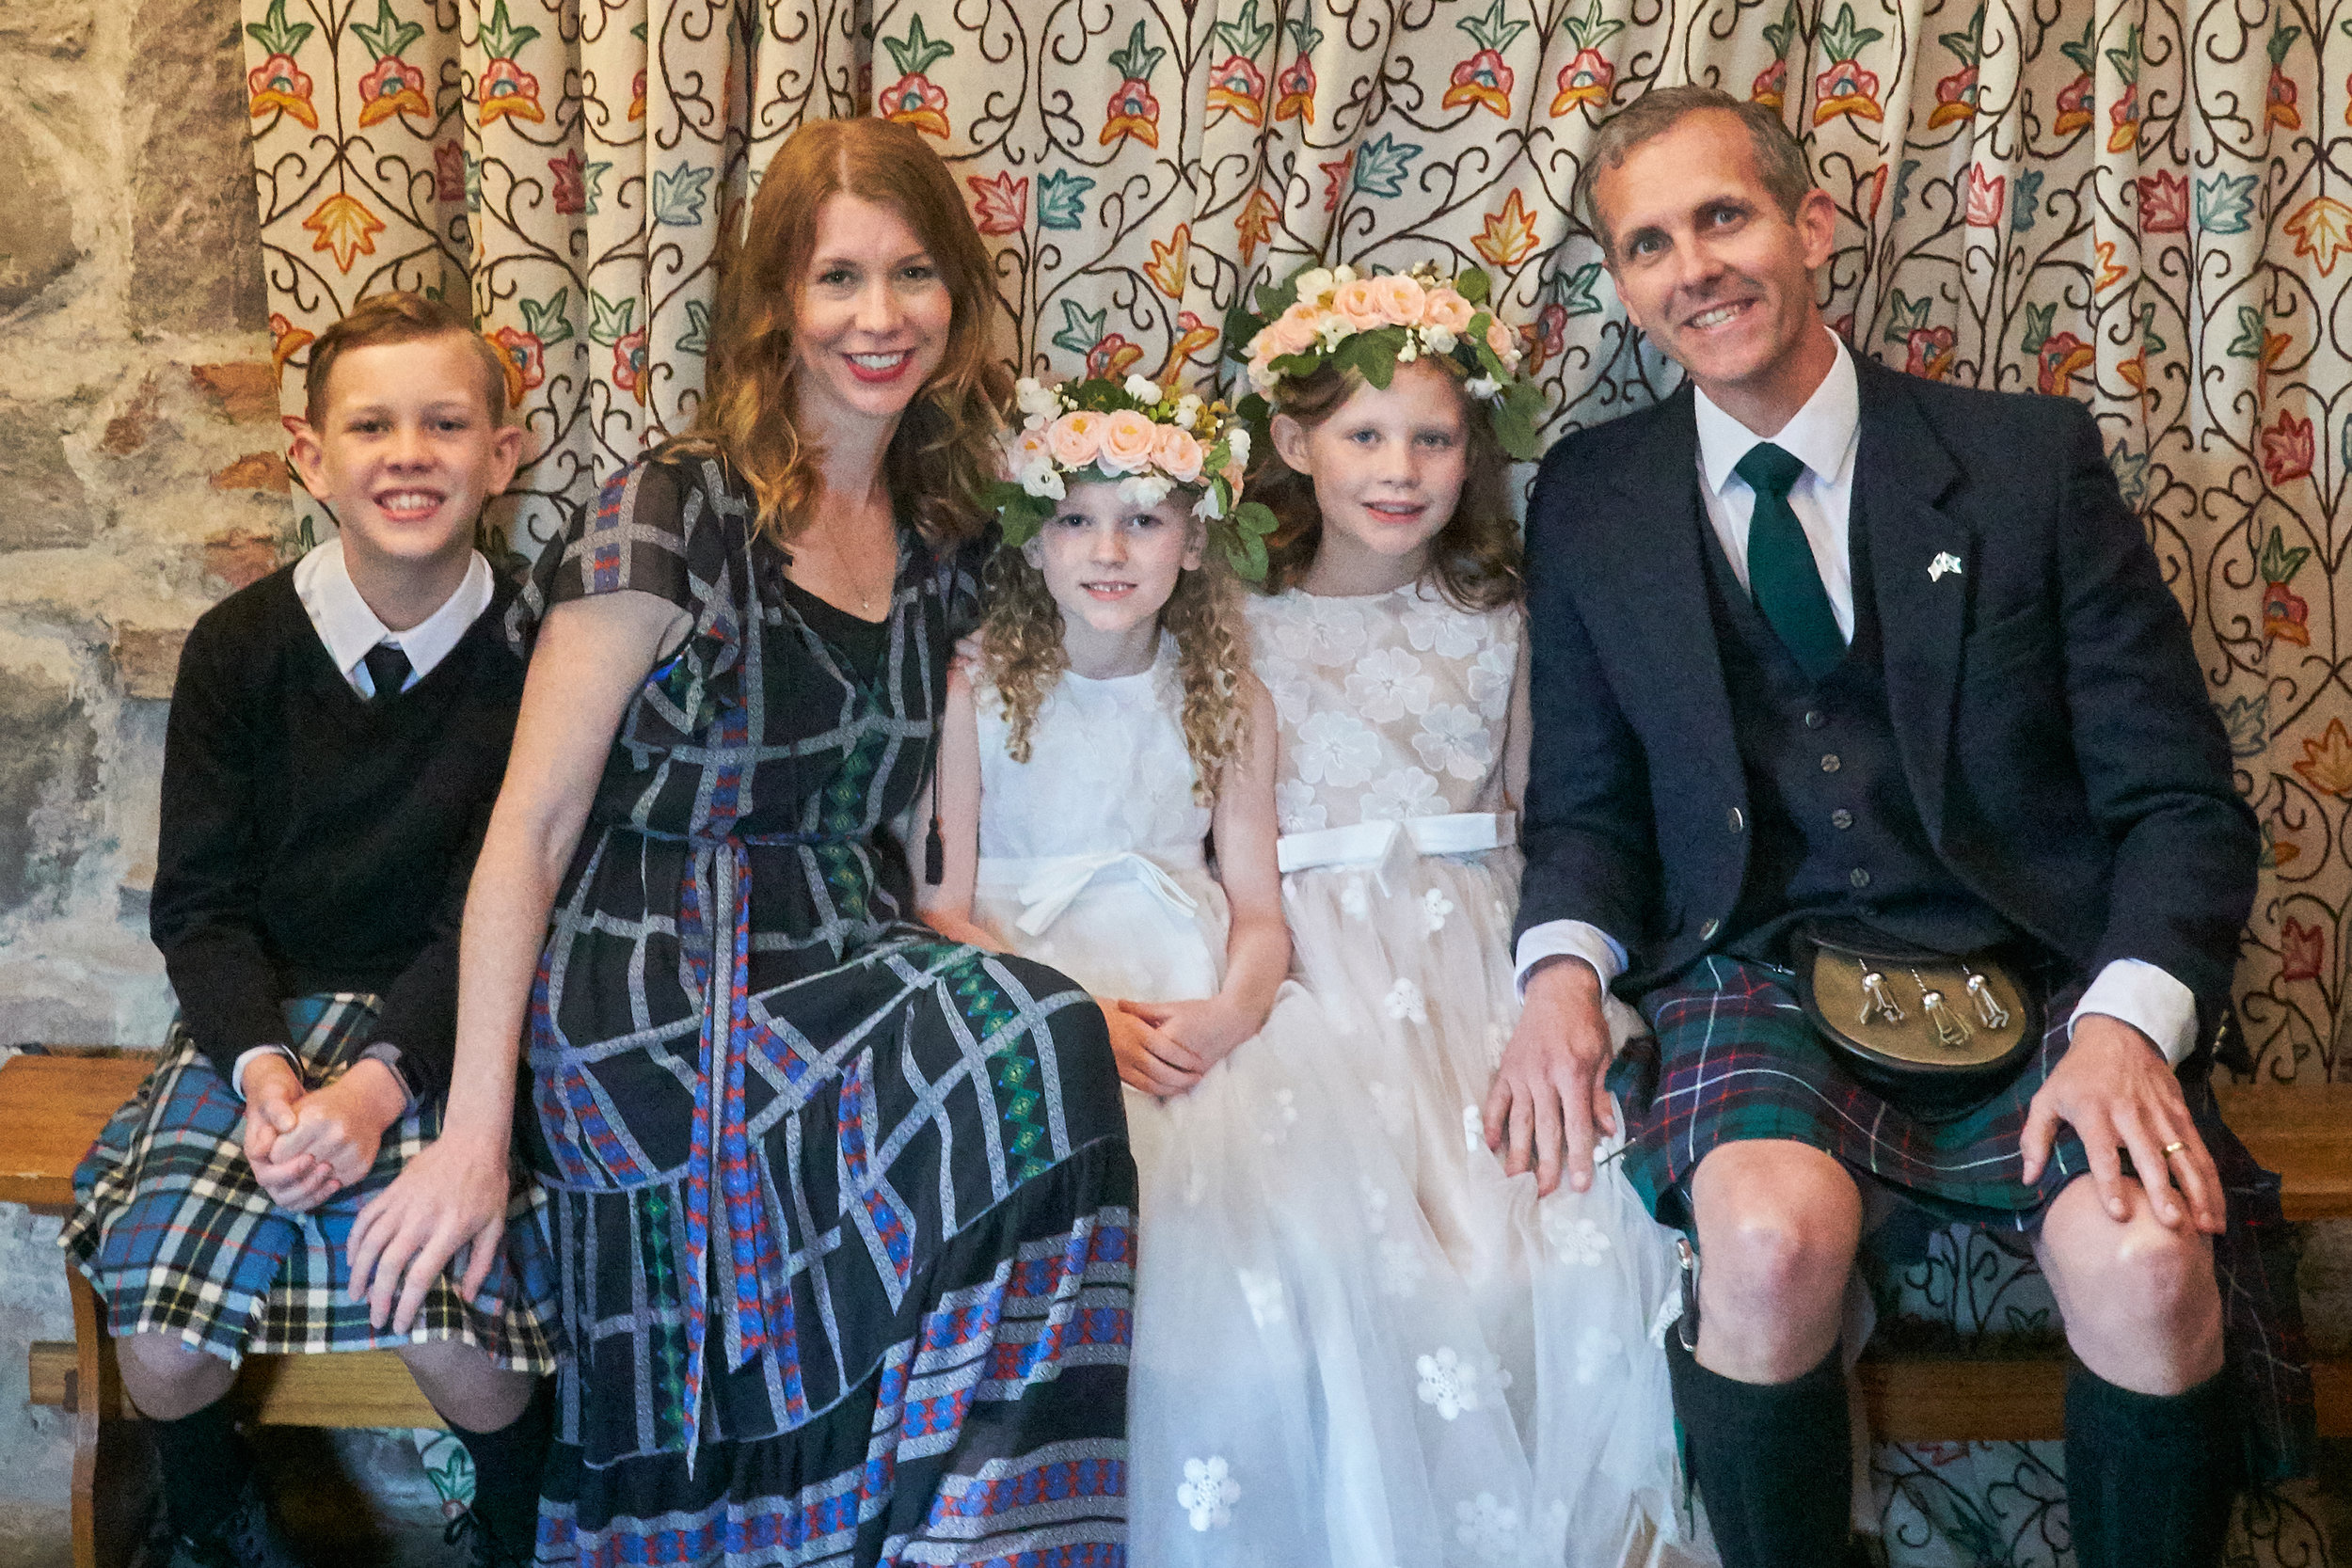 Team Overstreet enjoyed our once-in-a-lifetime opportunity to participate in a proper Scottish Wedding this year.